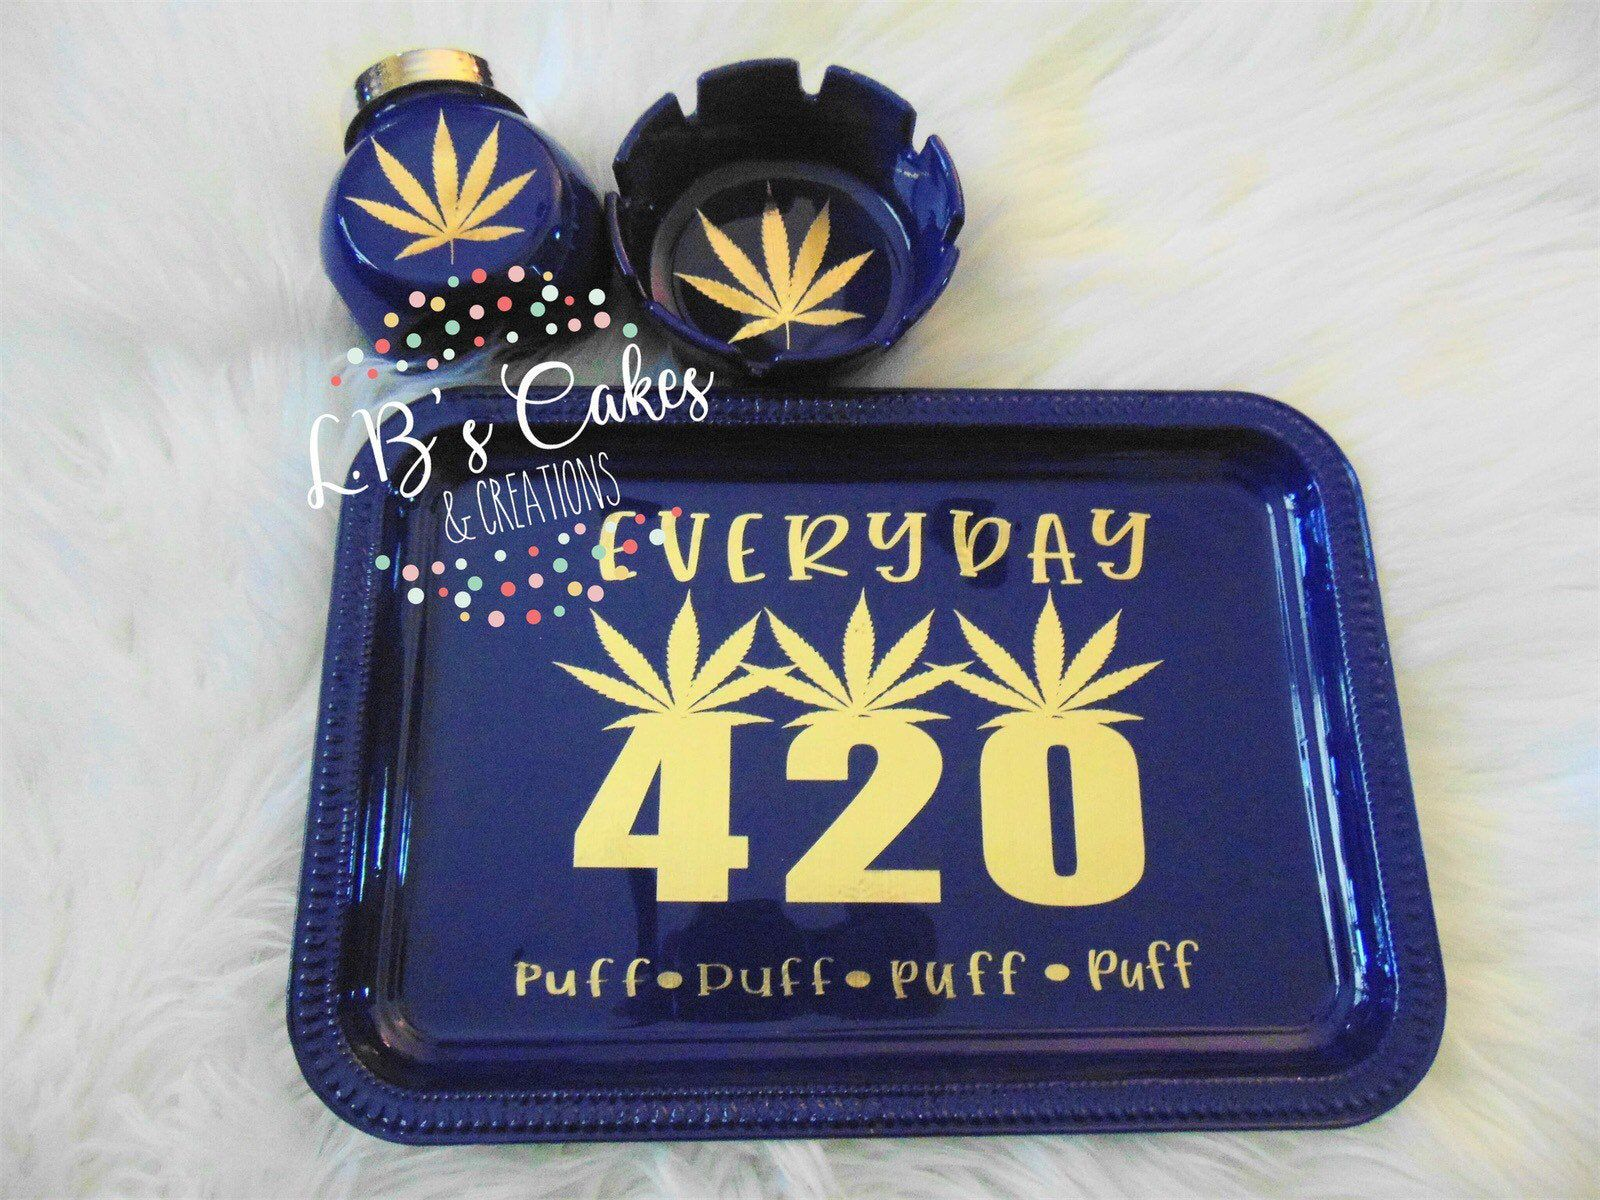 Lots Of Styles Without Glitter For Men Etsy Shop 420 Everyday Rolling Tray Set Gifts For Him Gold On Blue 420 In 2020 Diy Resin Tray Smoke Gifts Diy Tray